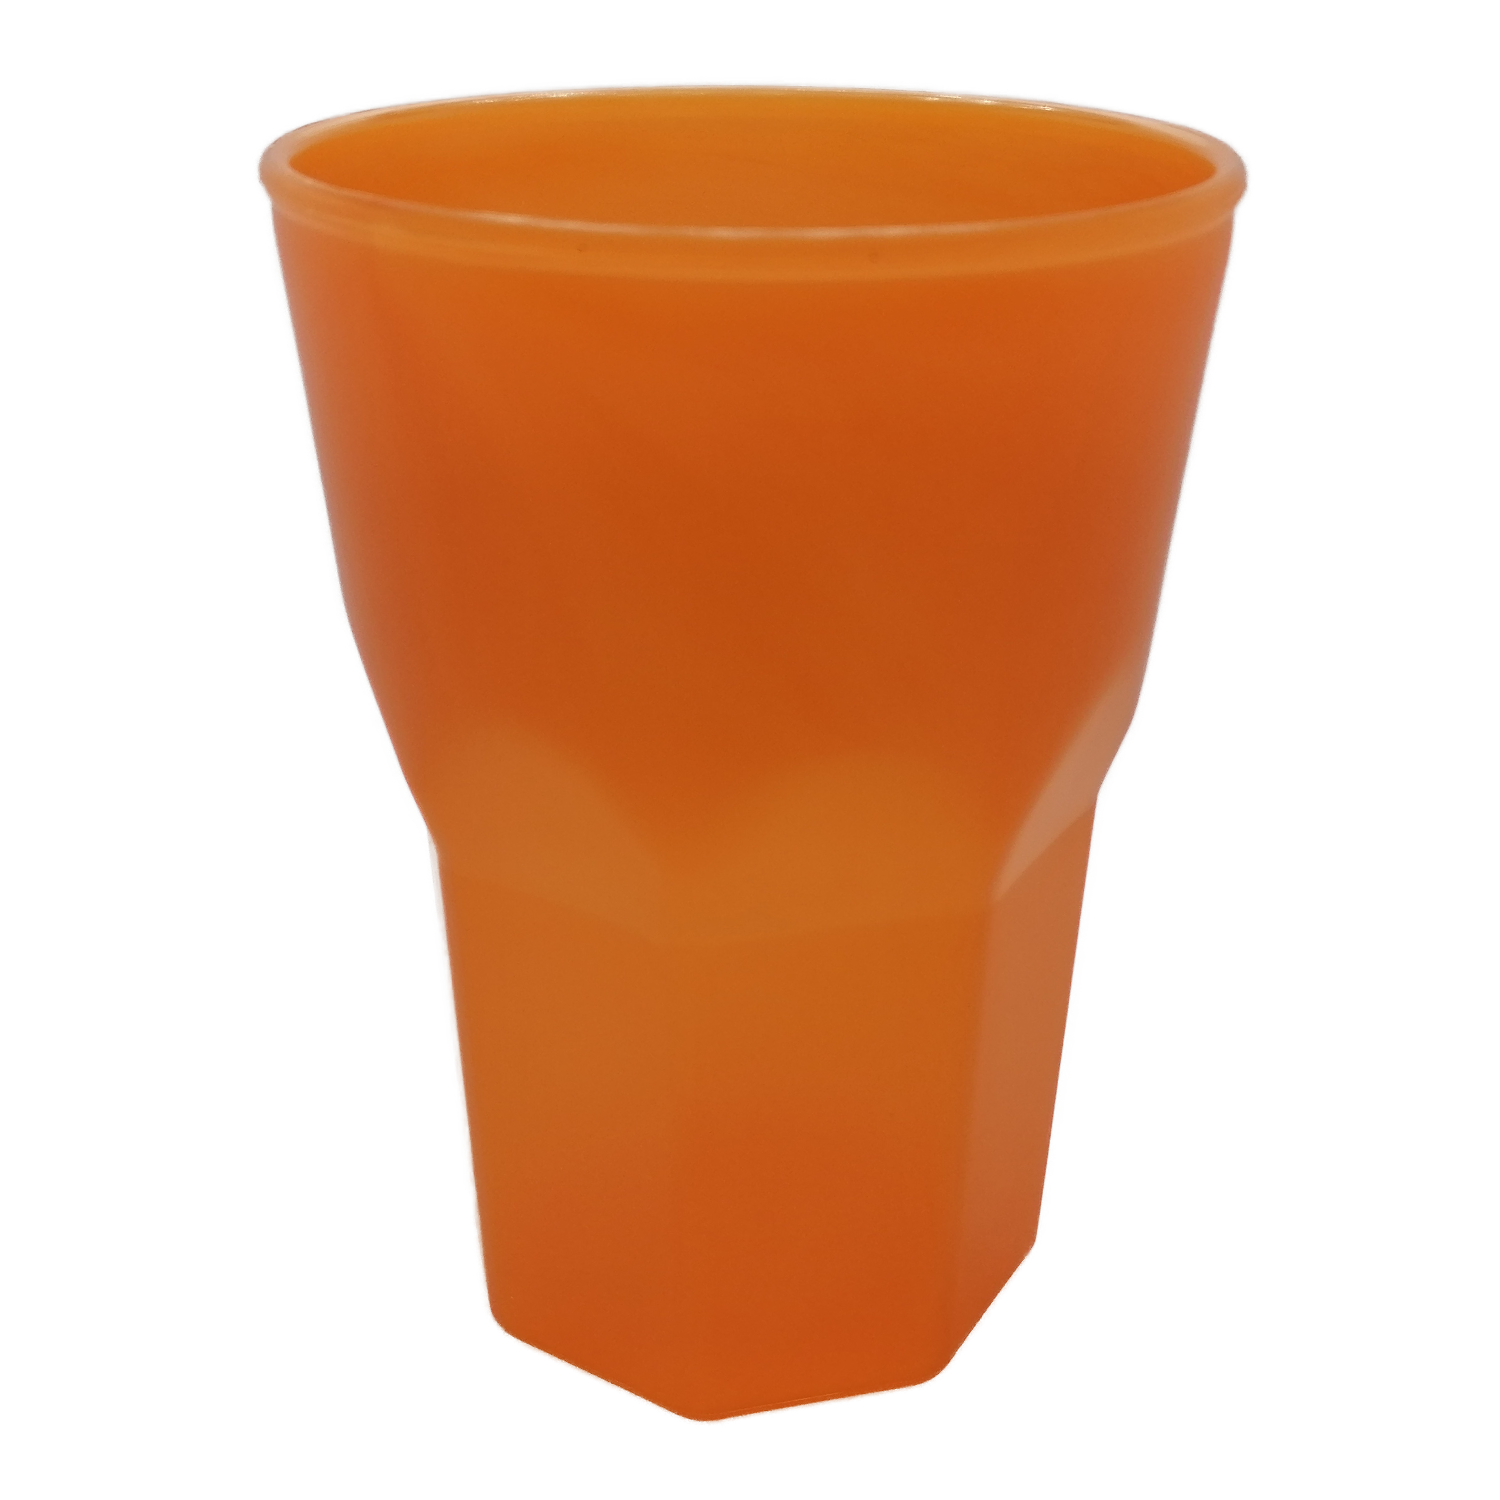 Lumacup in Neonorange